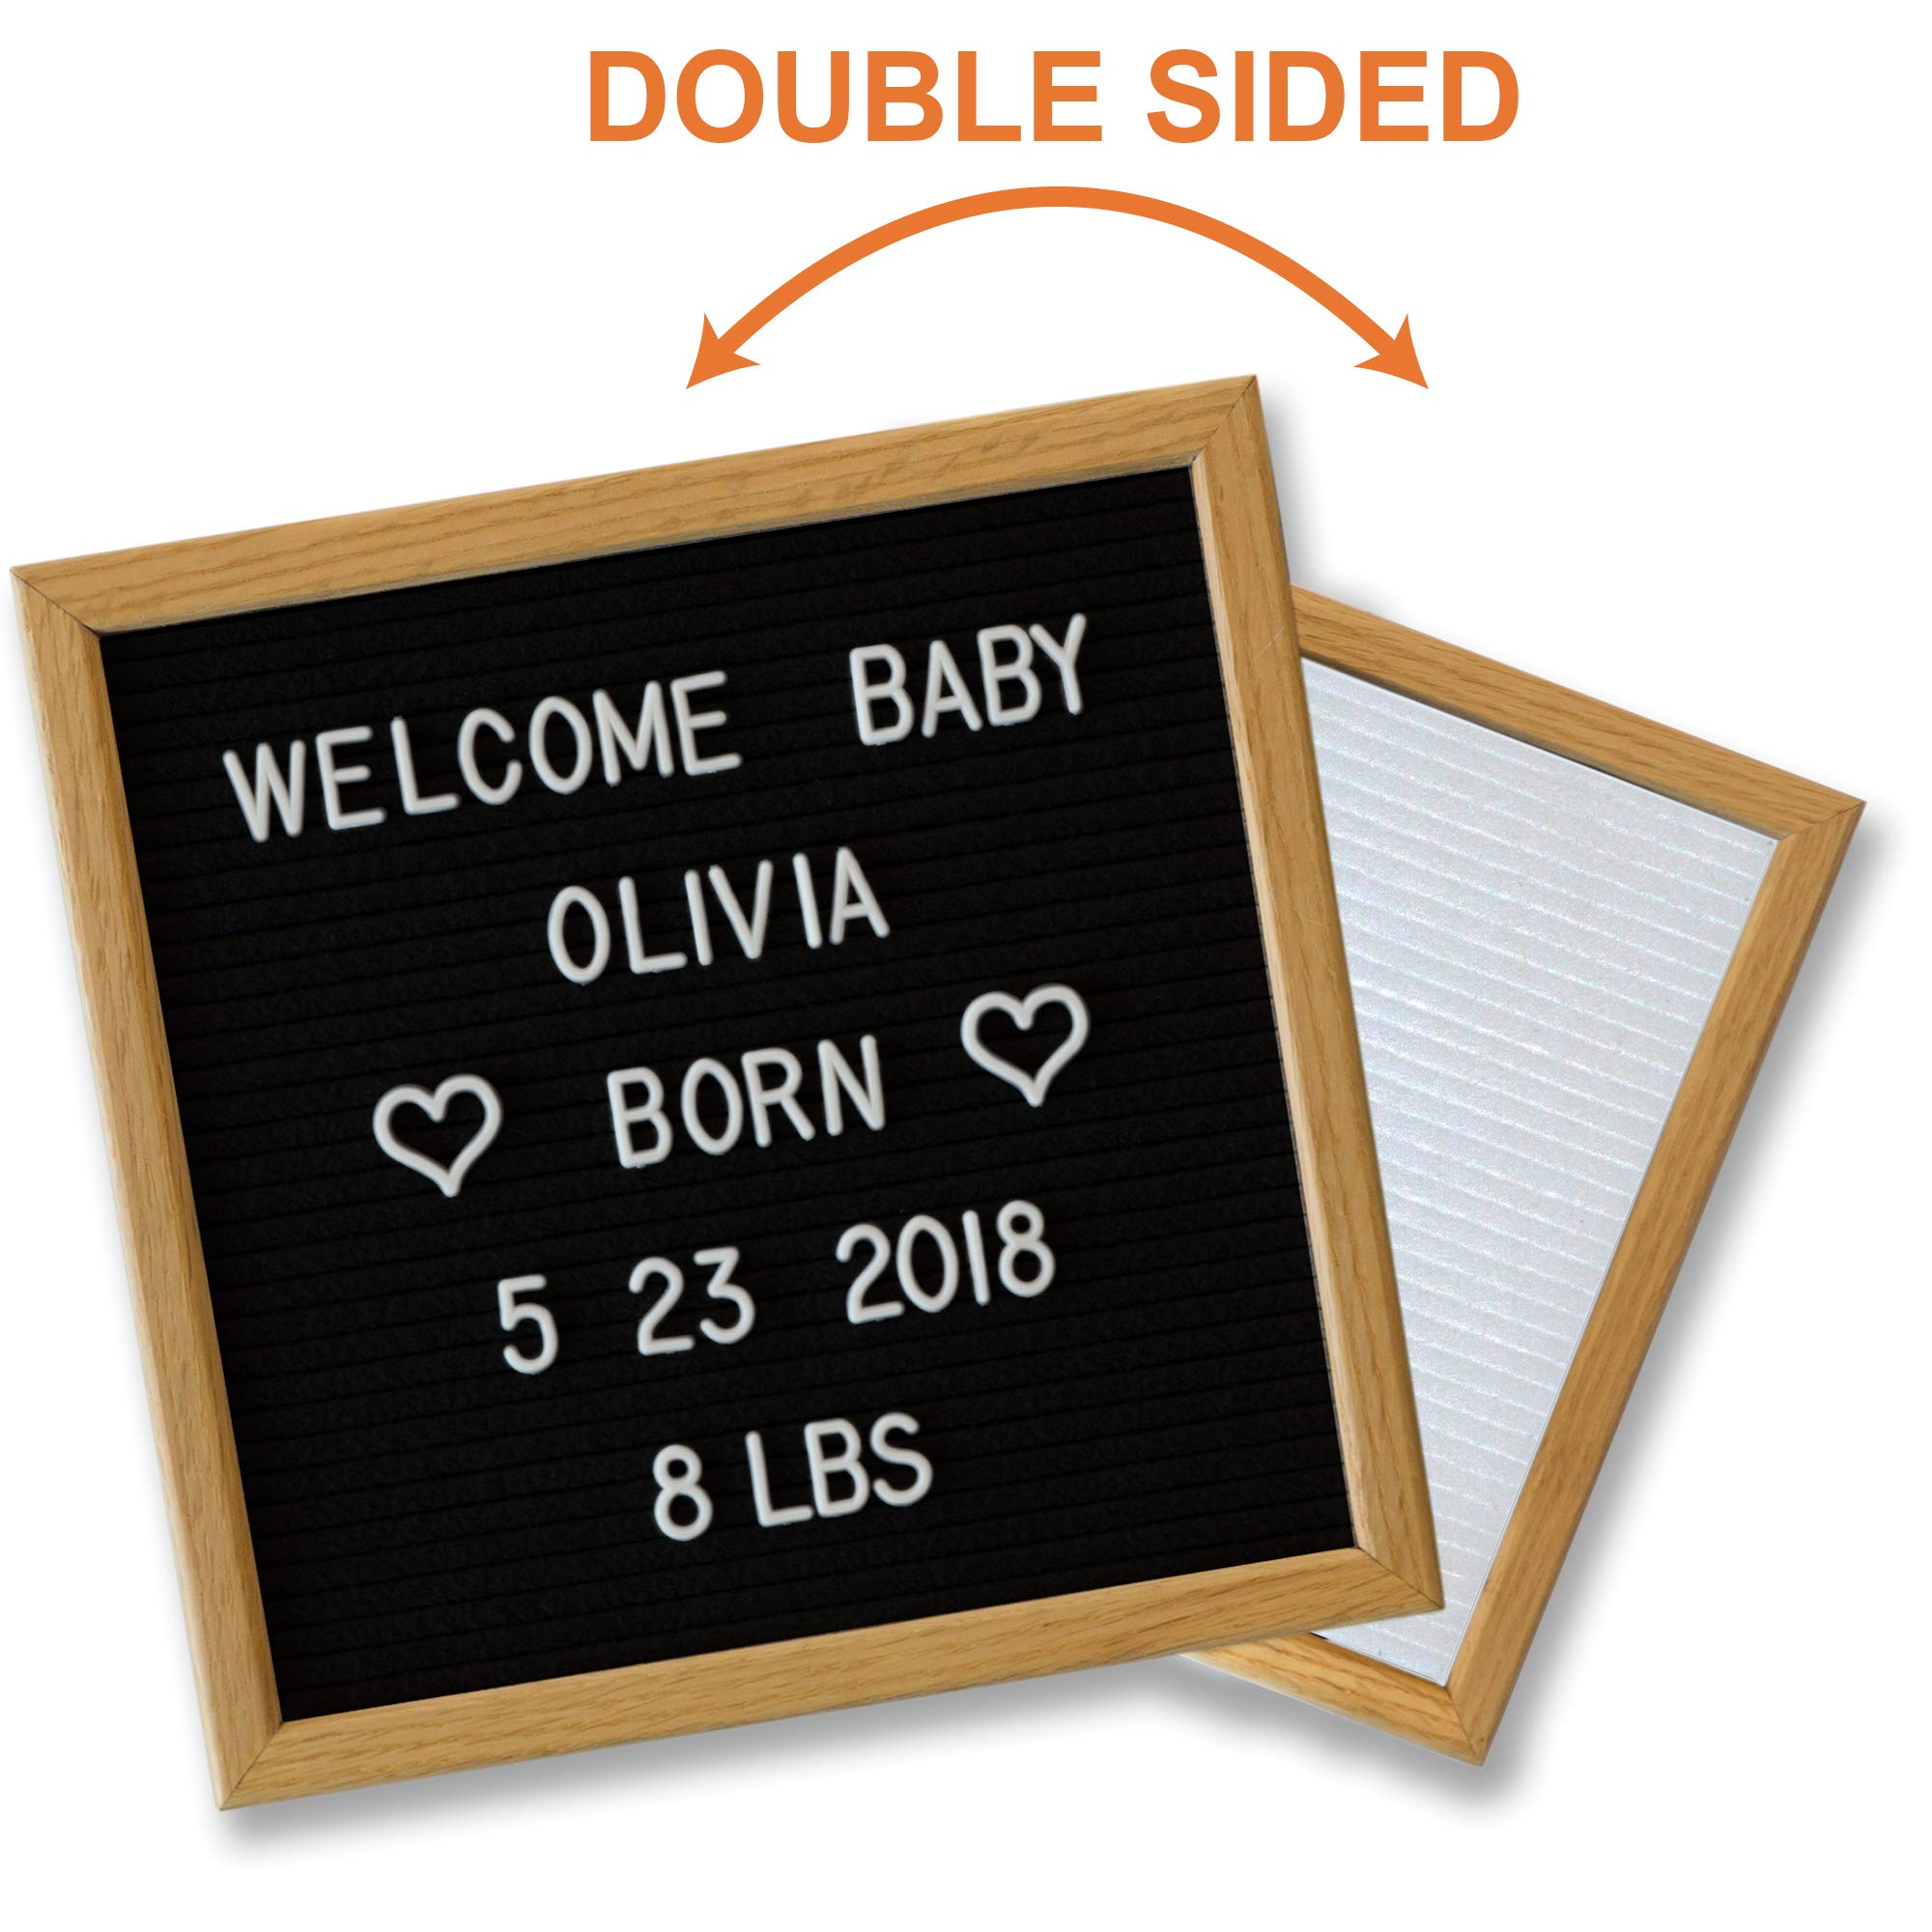 Black Letter Board White Double Sided 10x10, Stylish Stand and 600 Changeable Letters. American Oak Frame. Baby Announcement Board, Baby Shower Gift, Personalized Messaging Home.